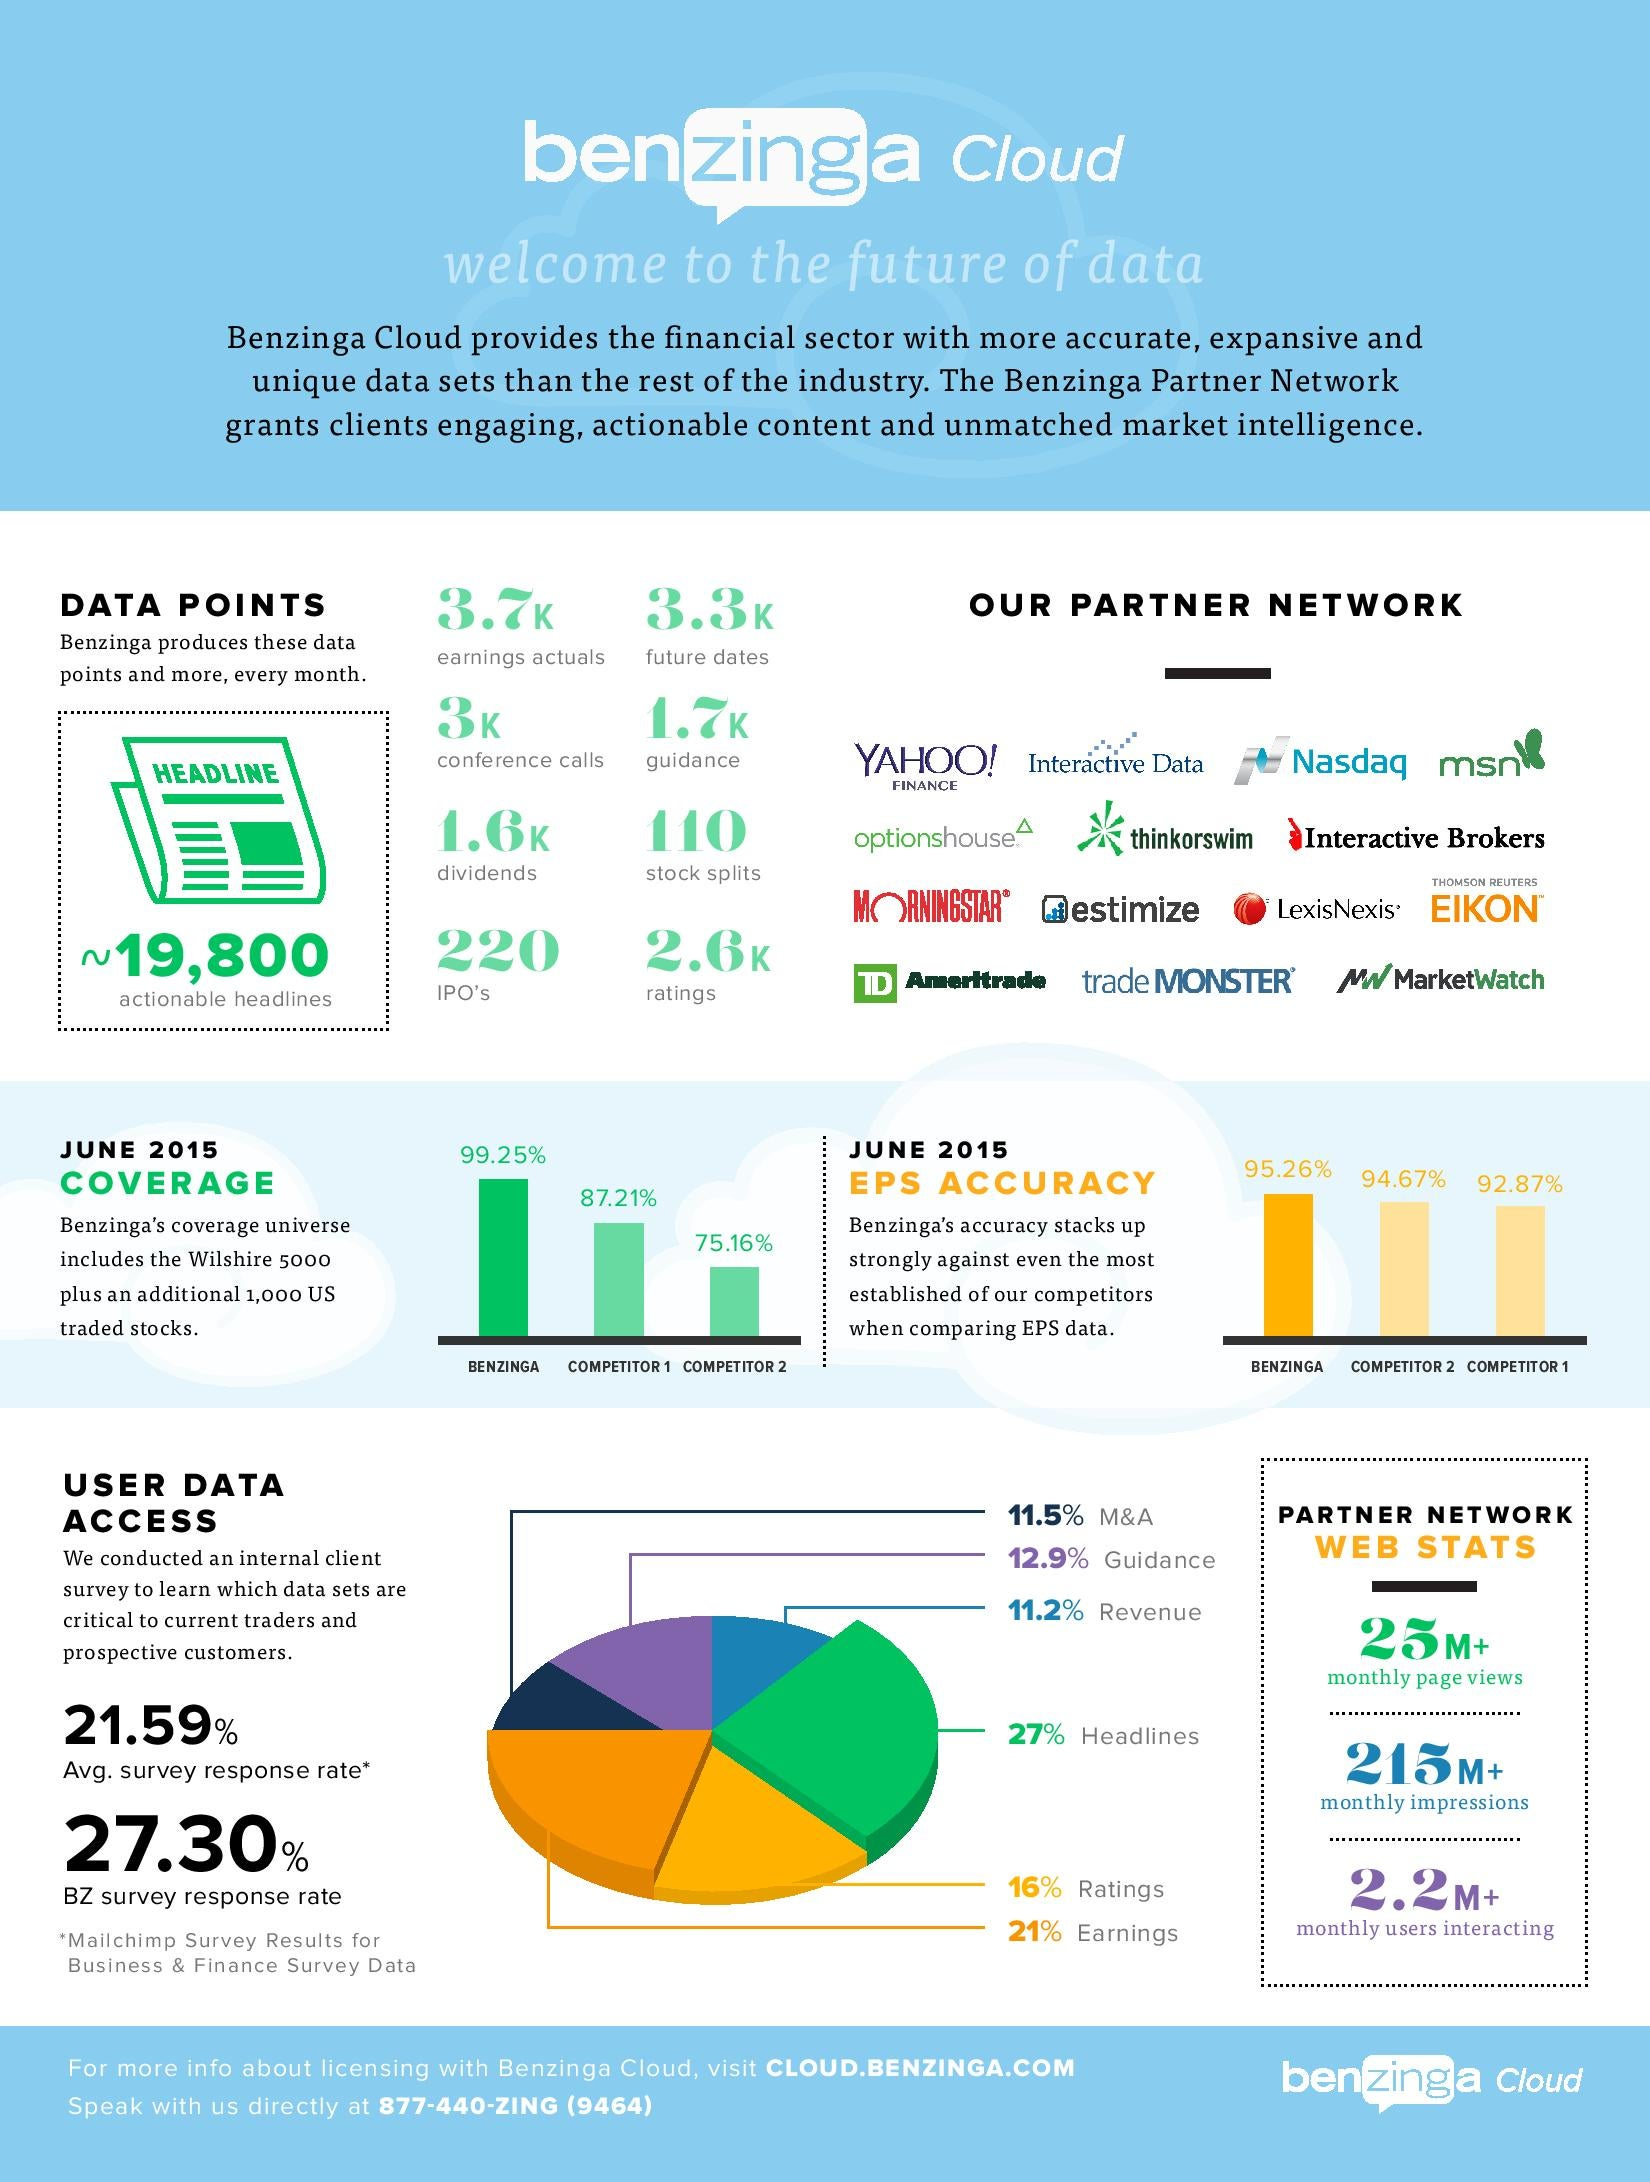 benzinga_cloud__the_future_of_data__infographic_-page-001_1.jpg